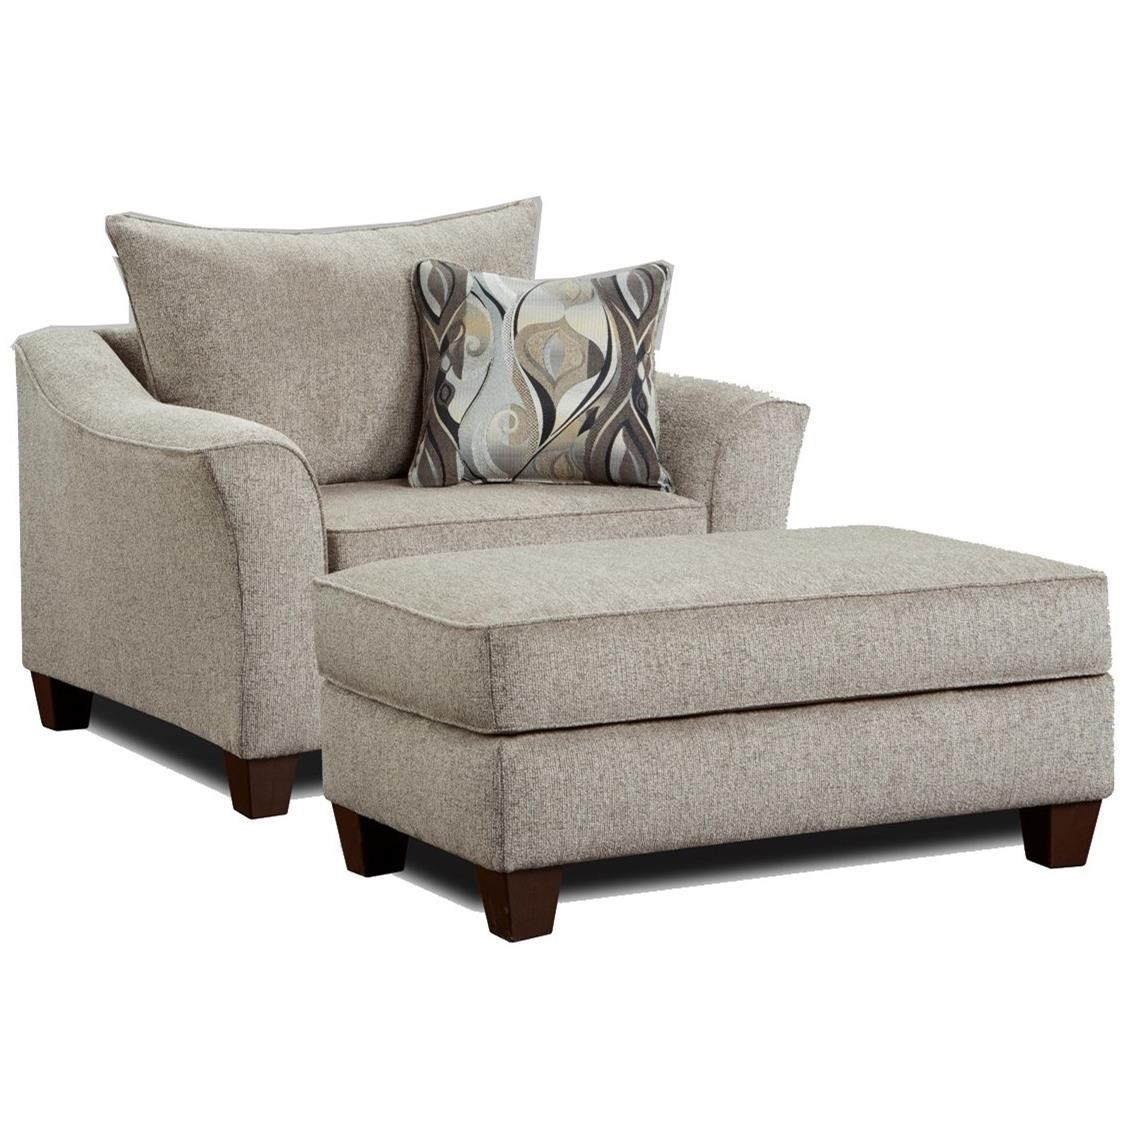 Oversized Chair And Ottoman Set Chair And A Half With Ottoman 7700 By Affordable Furniture